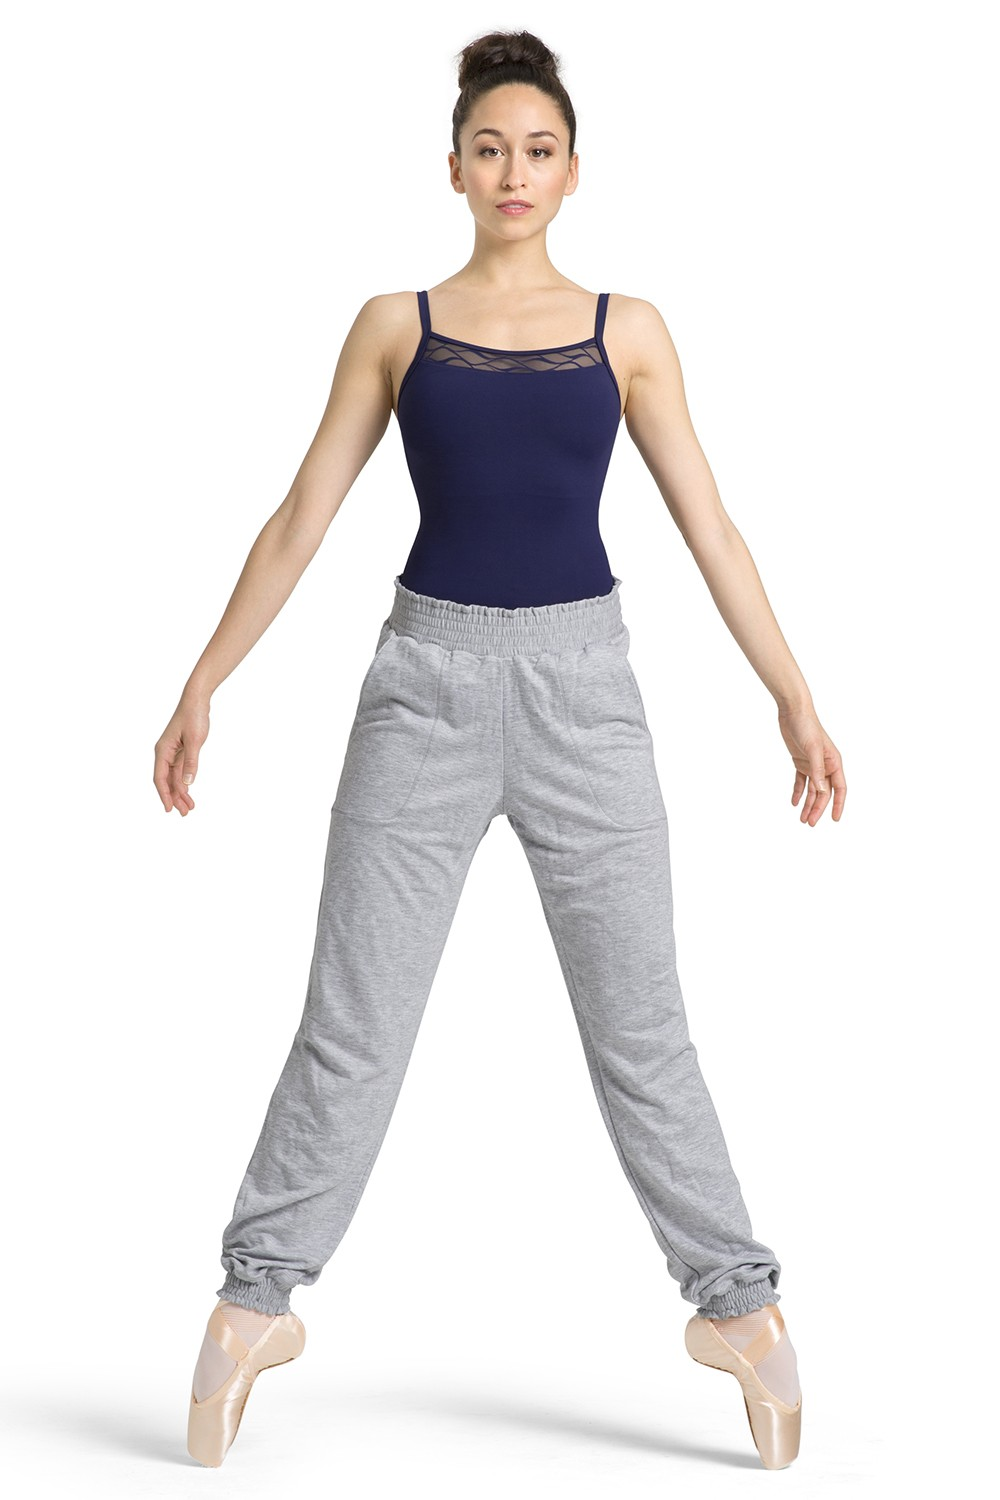 Shirred Hem Pant Women's Dance Warmups